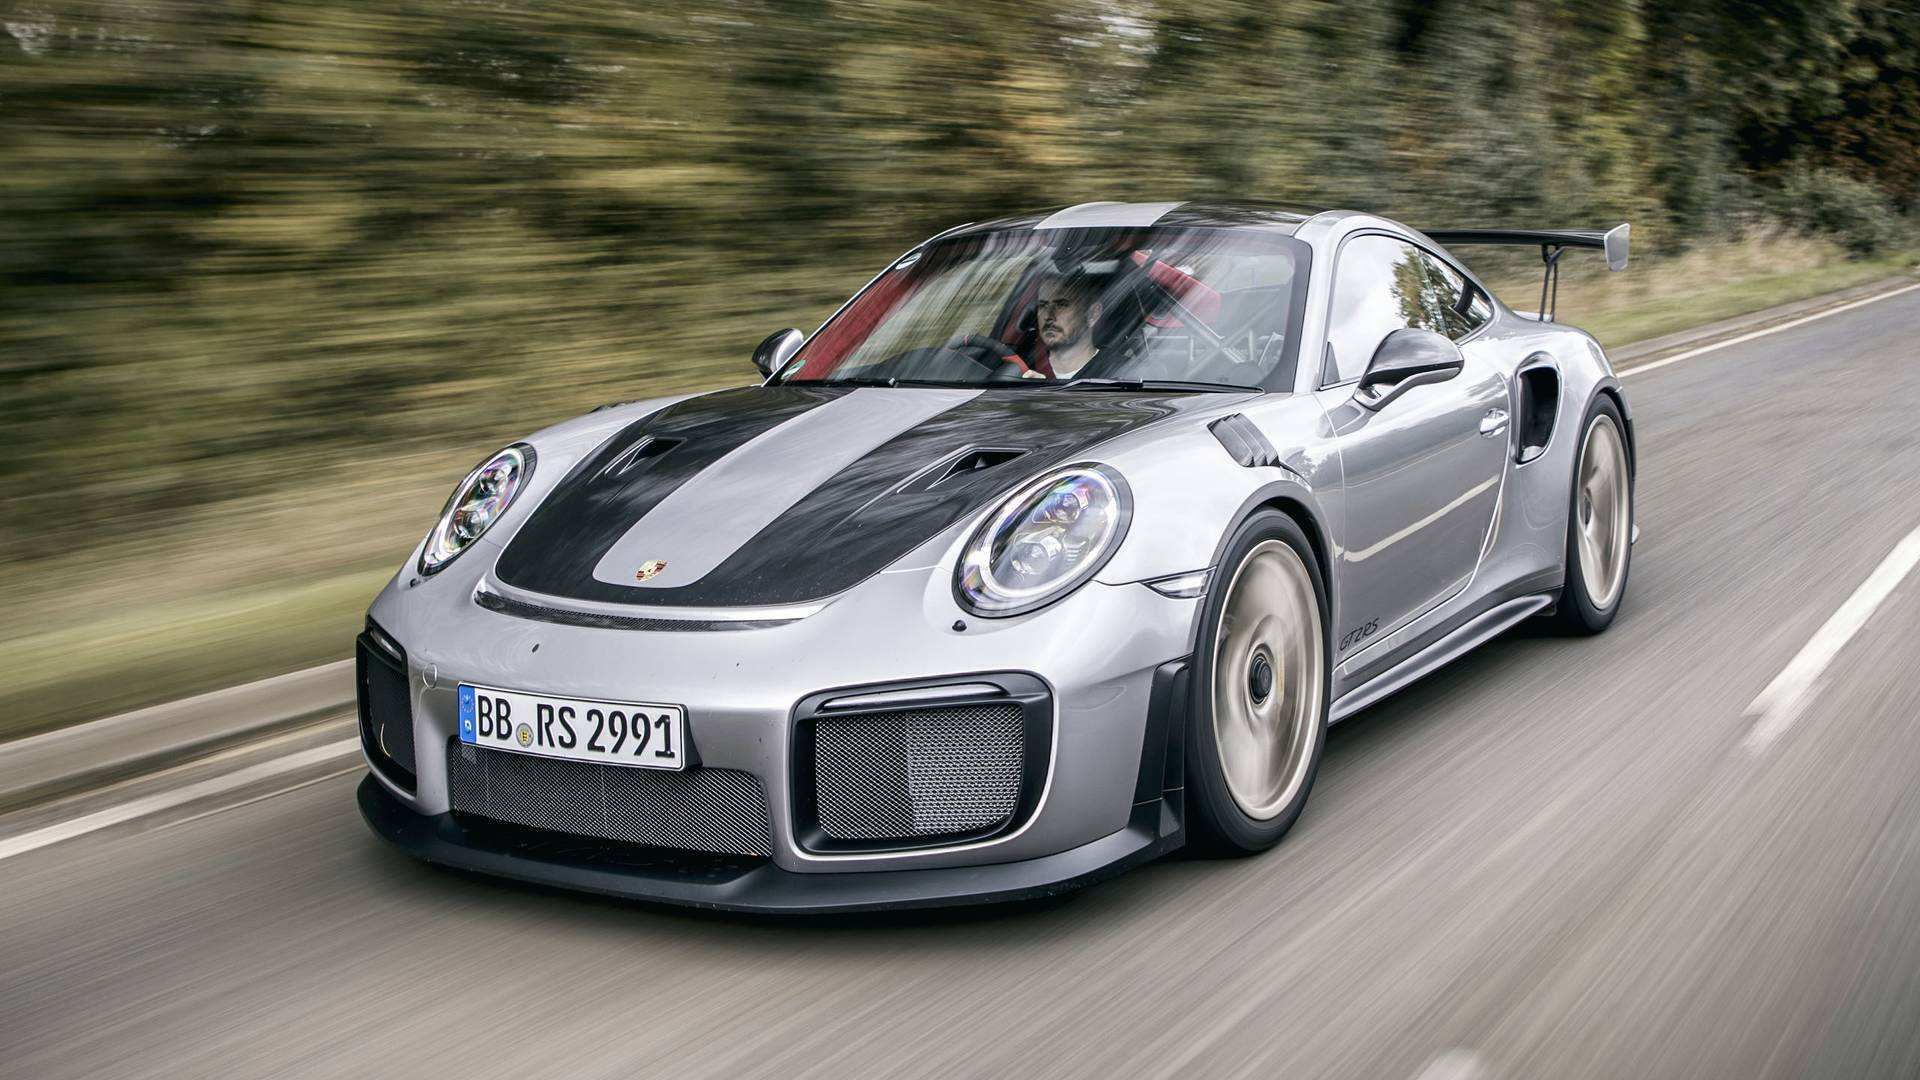 39 The 2019 Porsche Gt2 Rs For Sale First Drive for 2019 Porsche Gt2 Rs For Sale